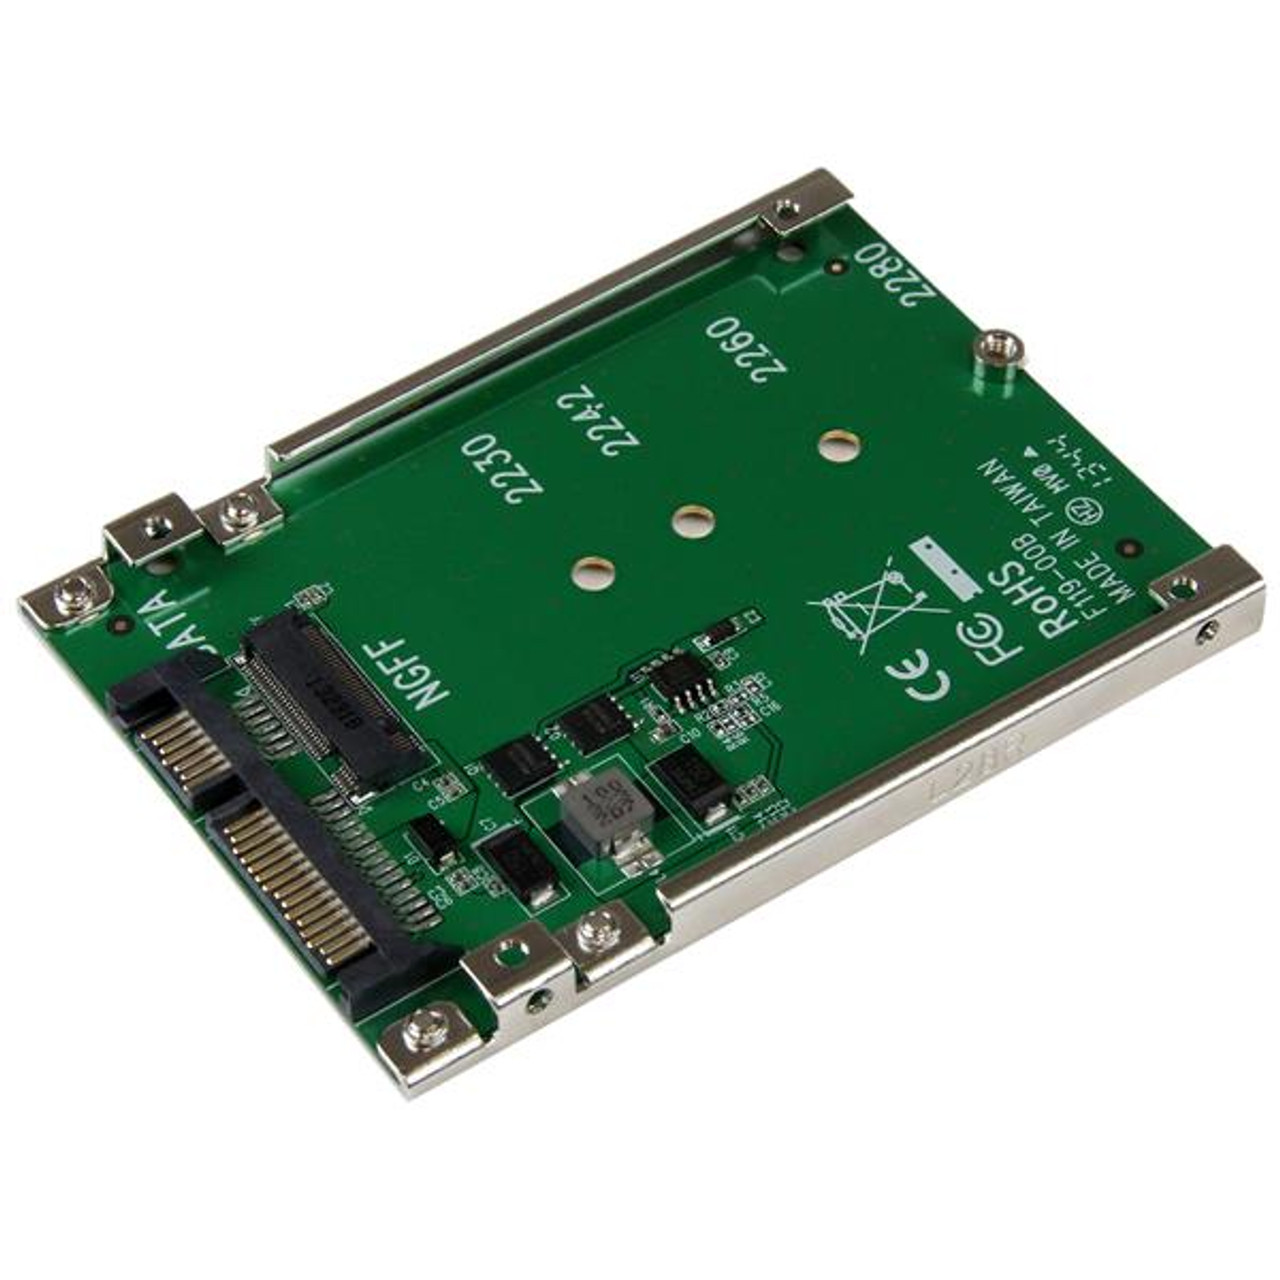 Image for StarTech M.2 SSD to 2.5in SATA Adapter - M.2 SSD to SATA Converter CX Computer Superstore